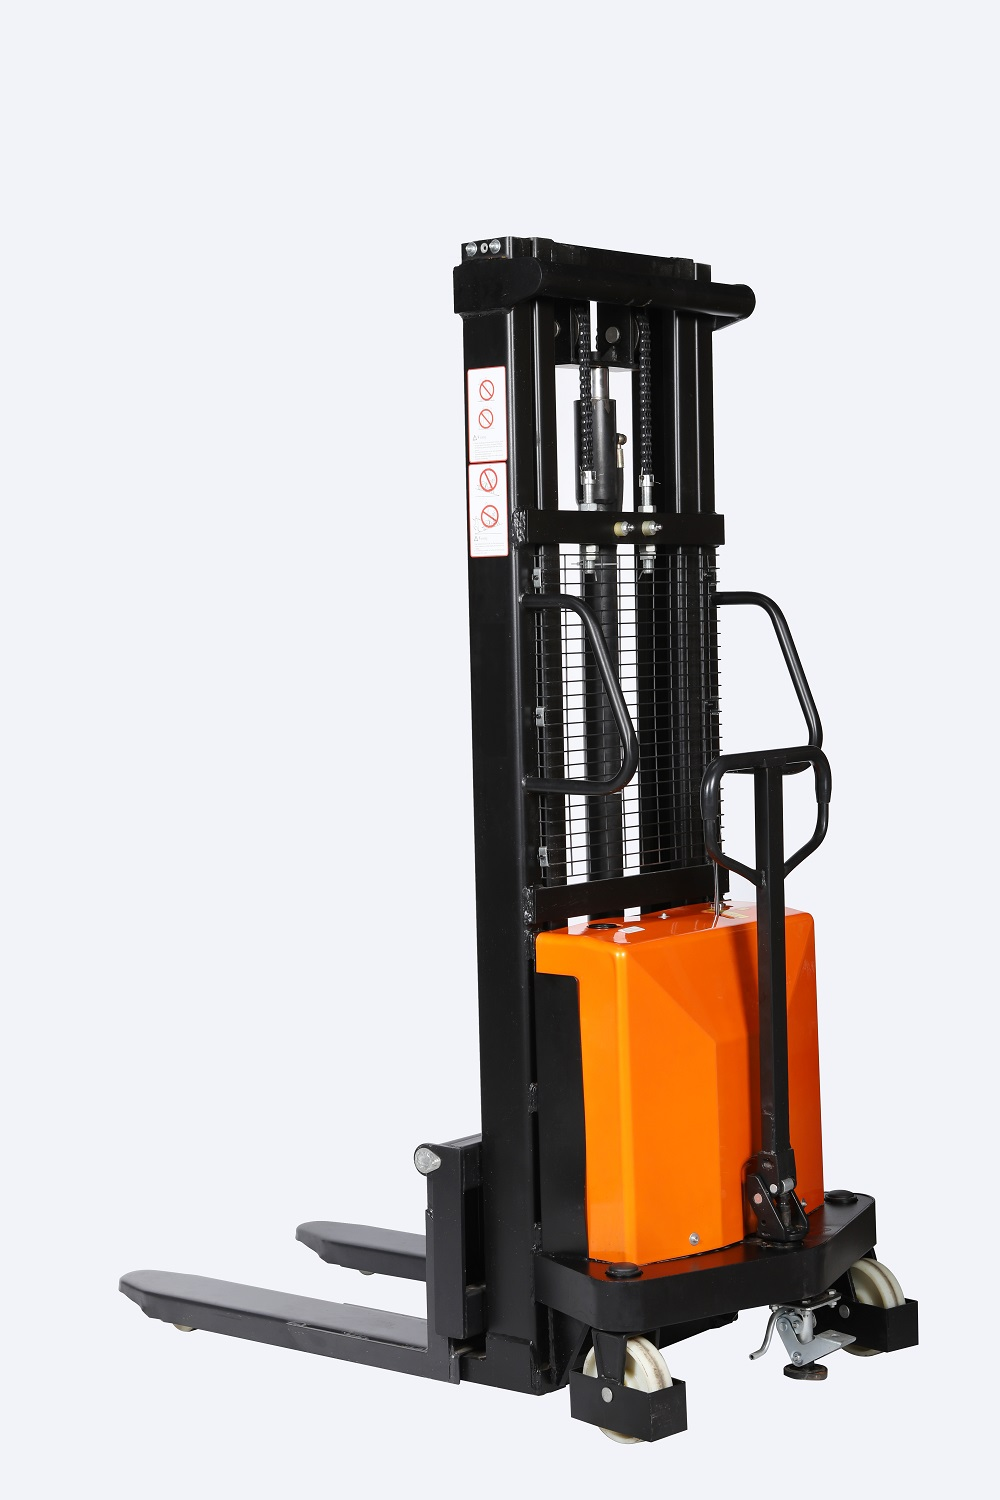 5500lbs 2500kg Stainless Steel Manual Pallet Jack